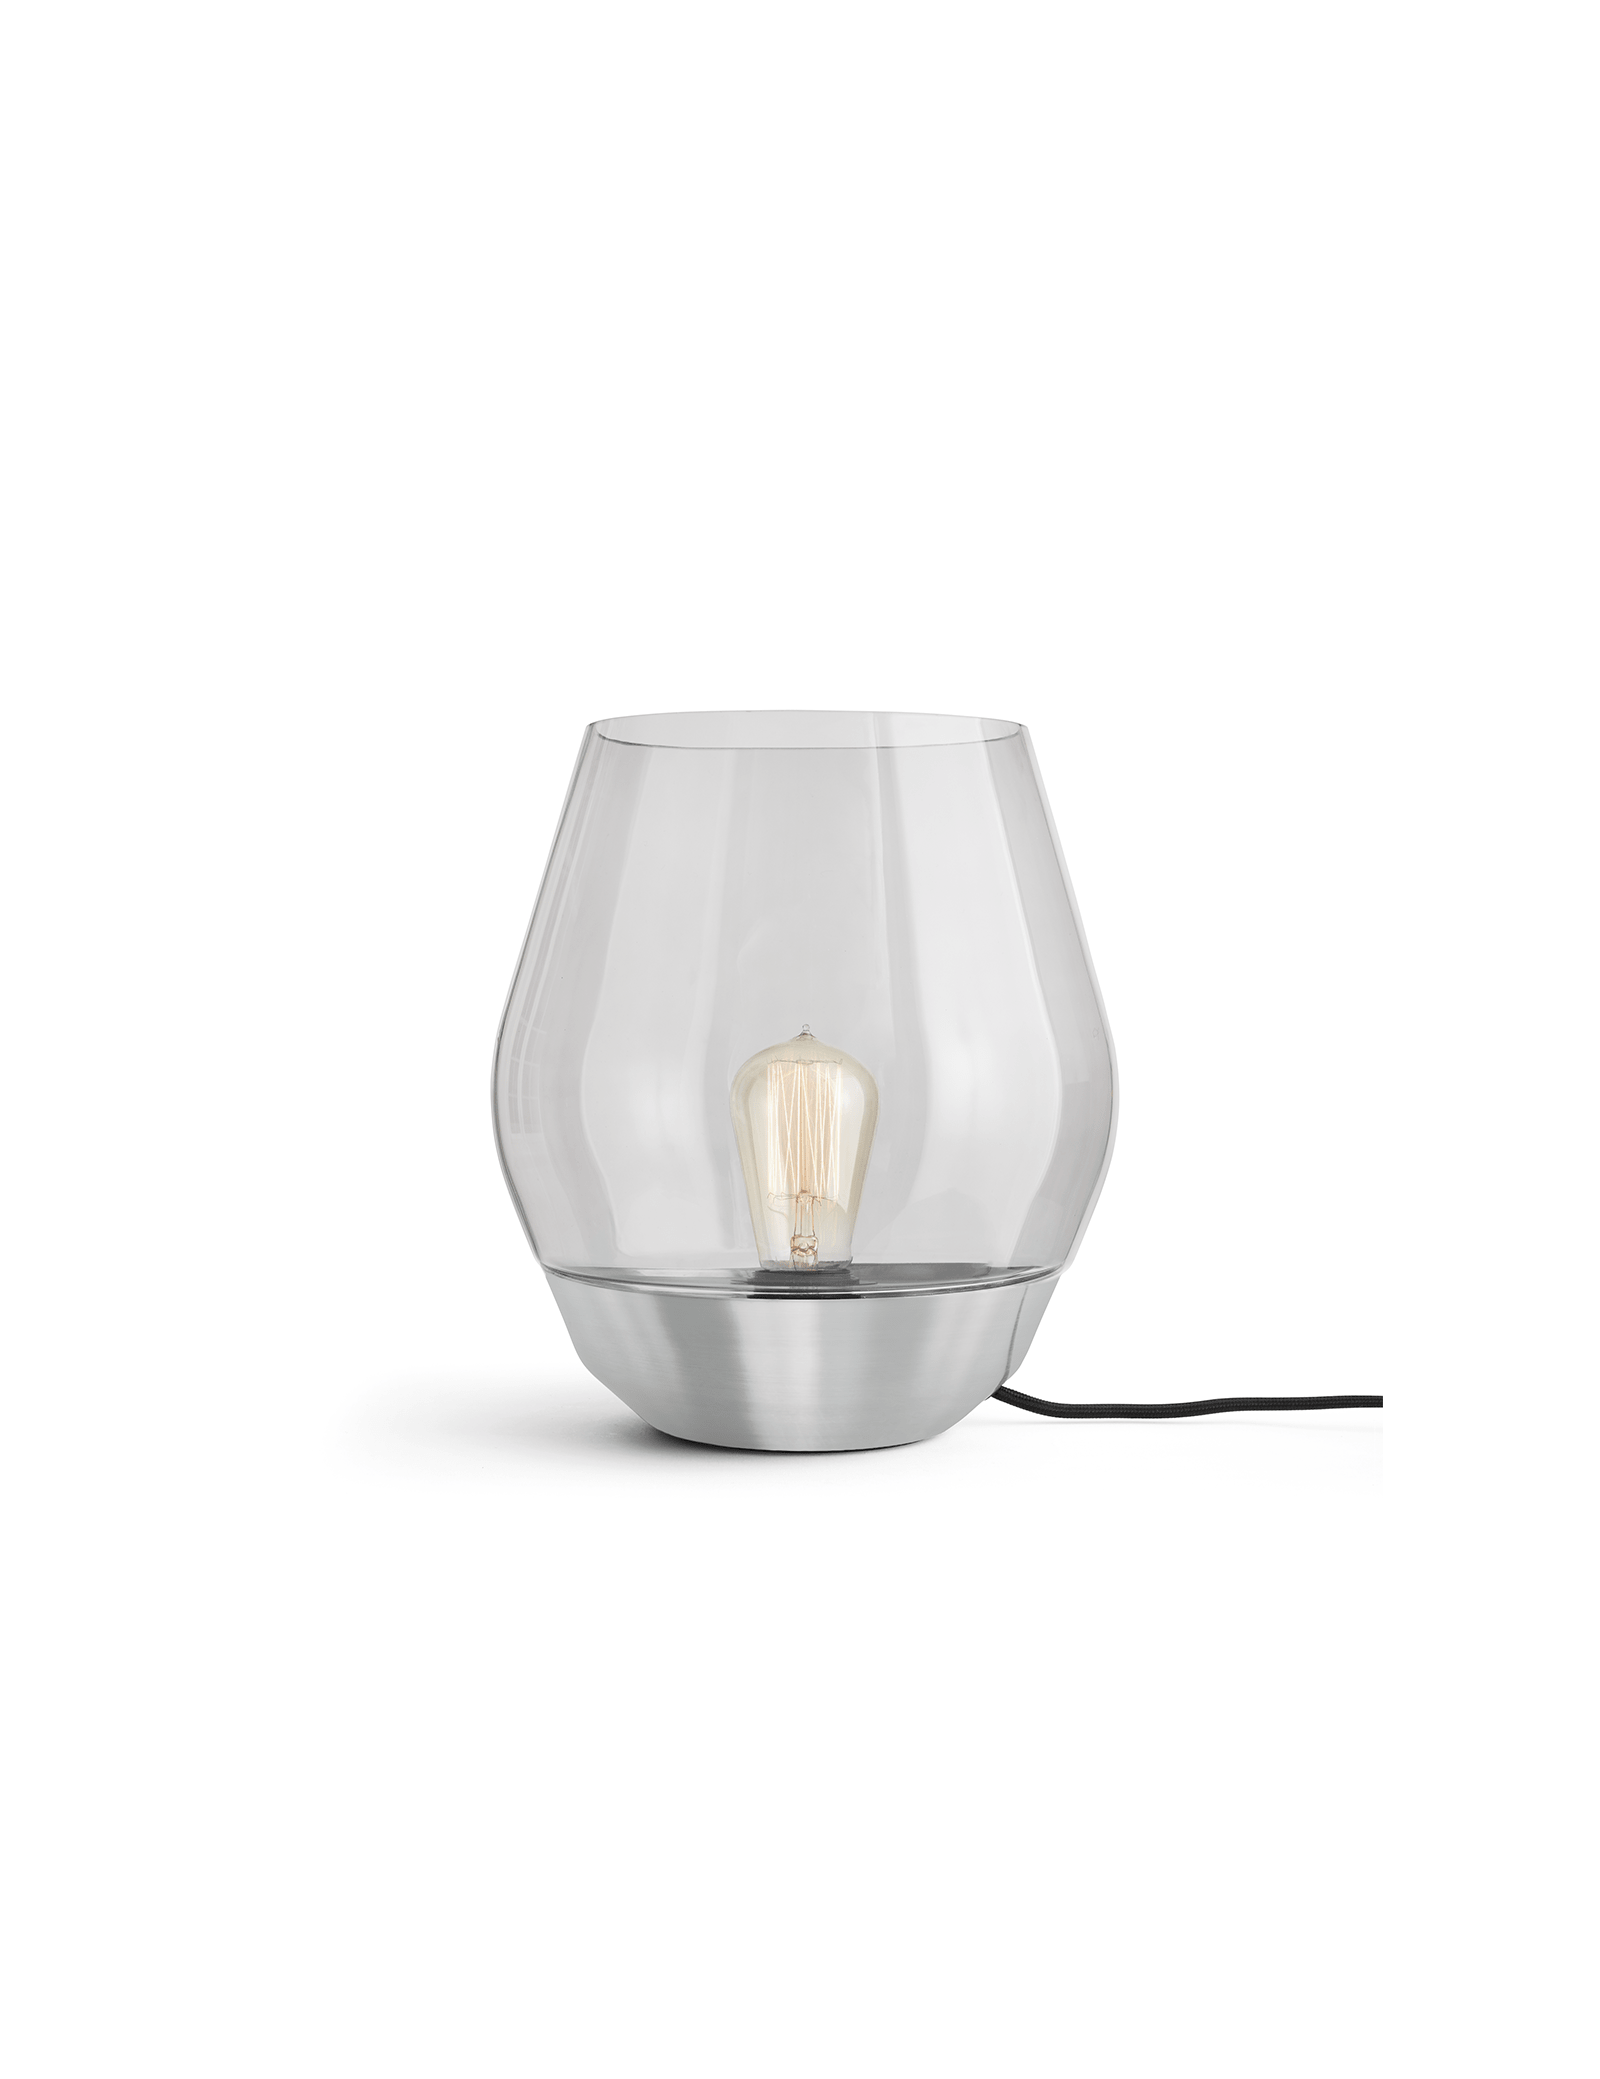 Bowl Table Lamp Stainless Steel White